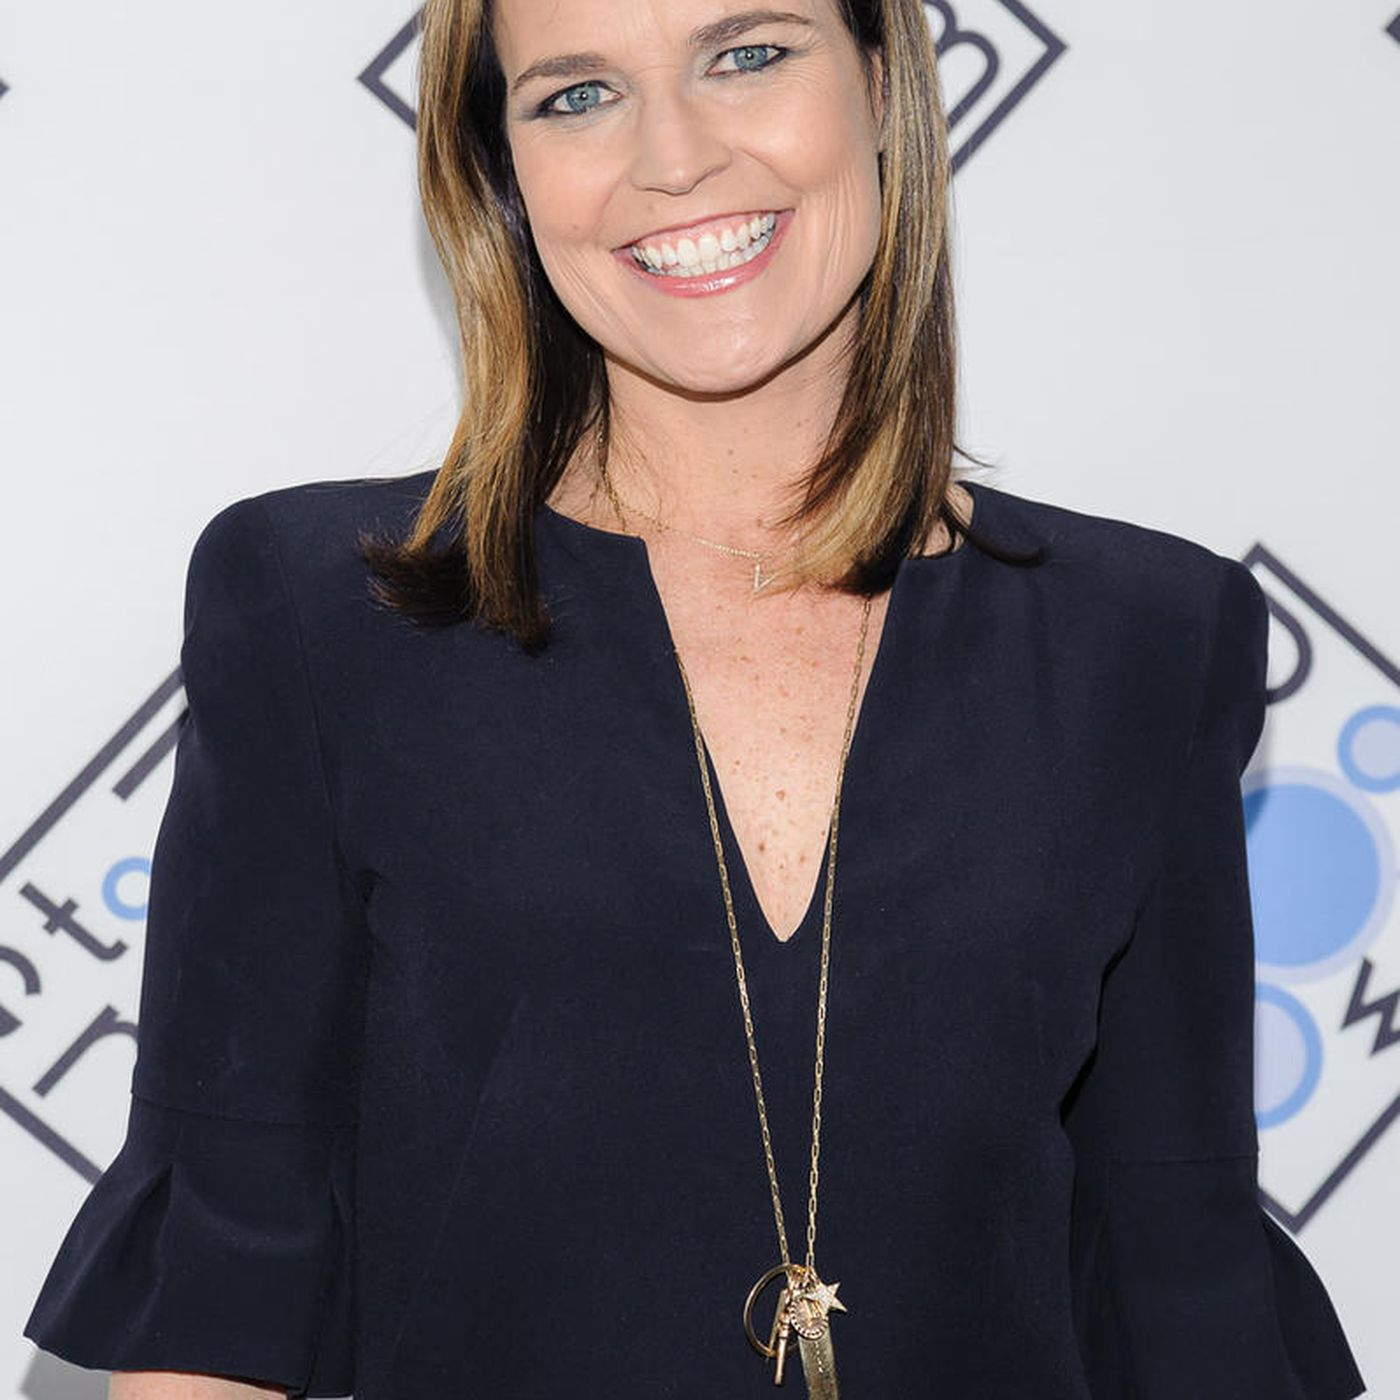 Pregnant Today Anchor Savannah Guthrie To Skip Olympics Because Of Zika Concerns Deseret News